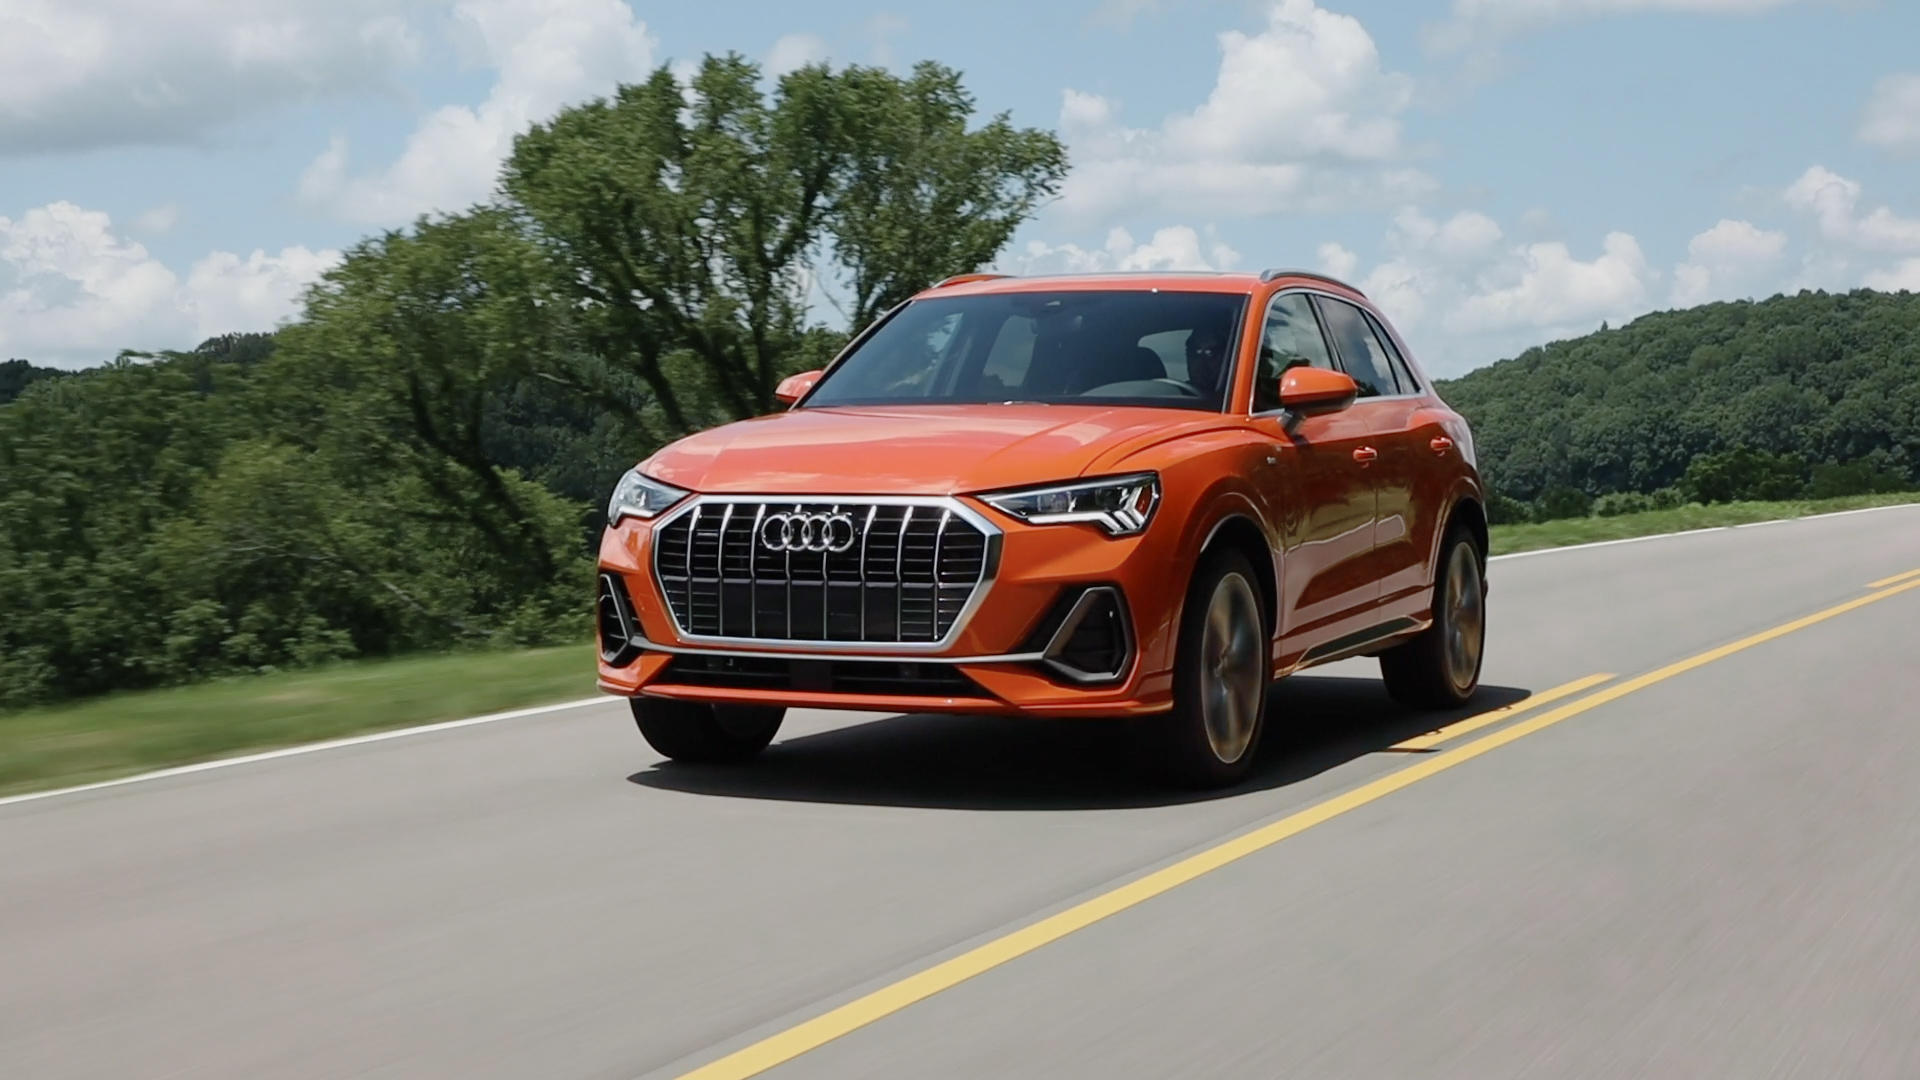 Video: 5 things to know about the 2019 Audi Q3